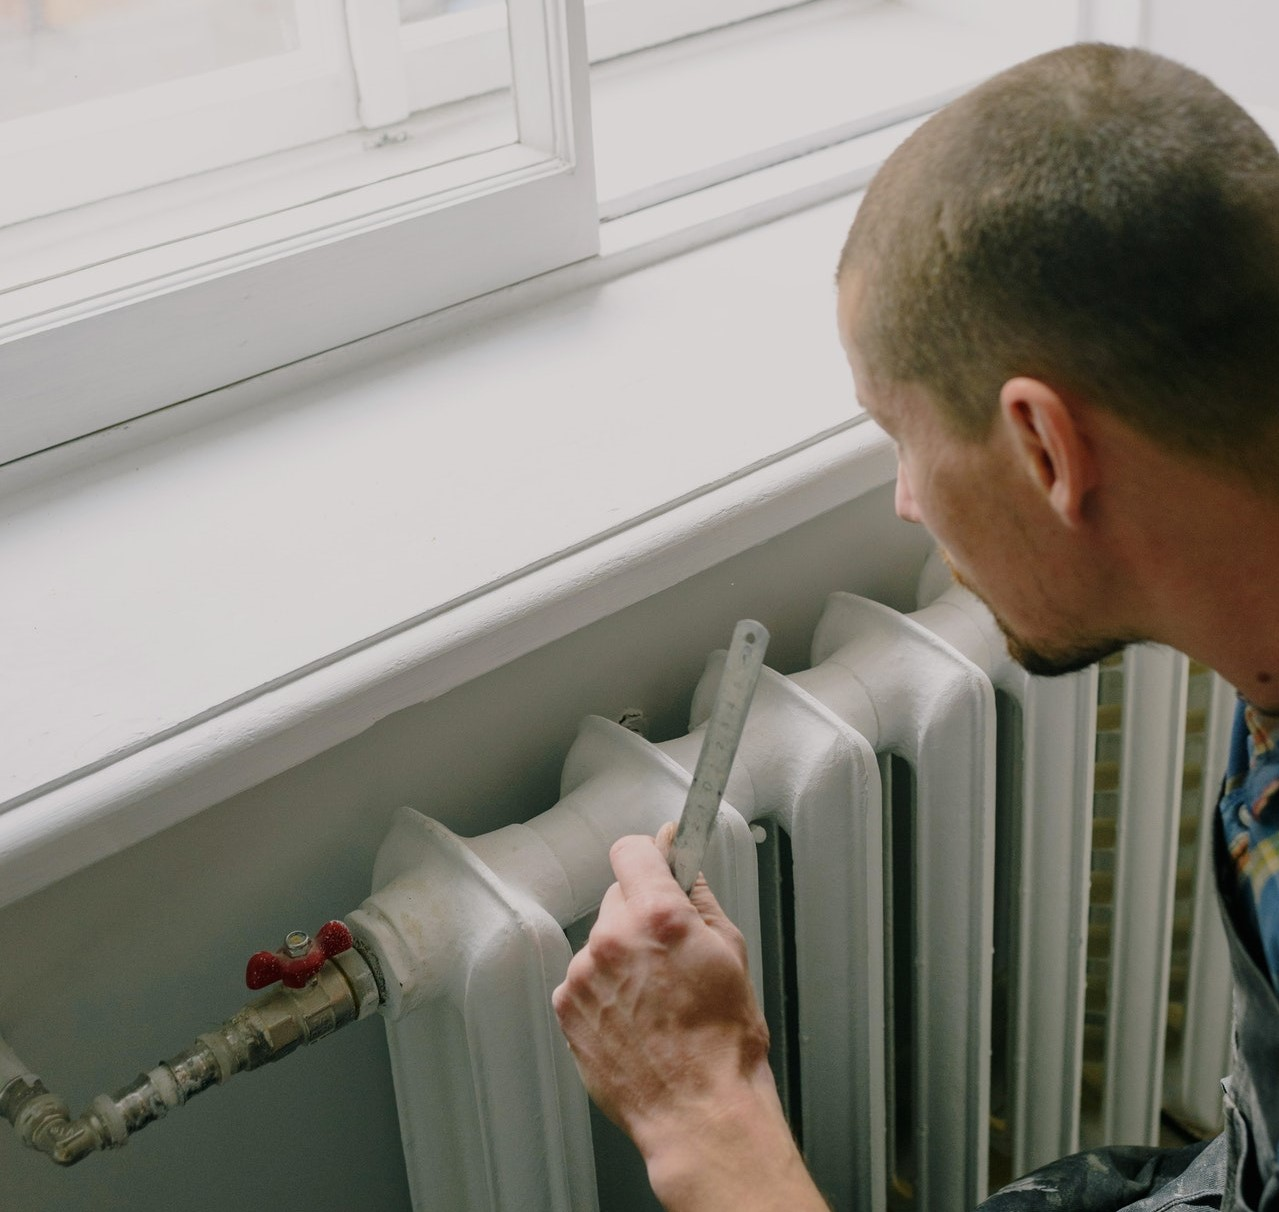 Repairman performing commercial gas maintenance on a radiator